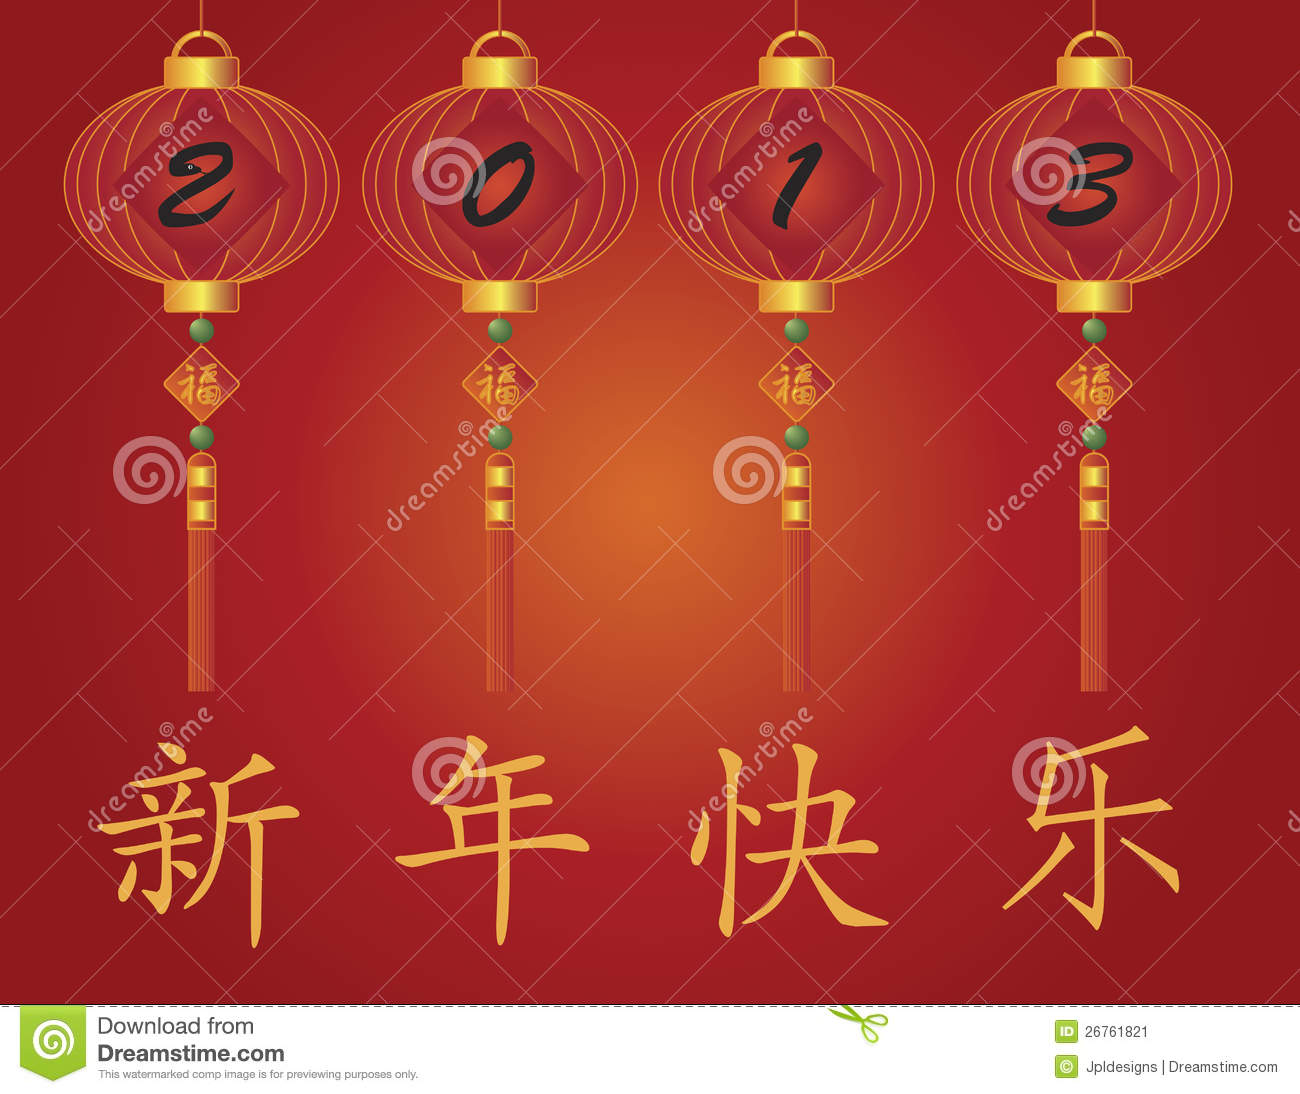 Chinese Calendar Illustration : Chinese new year lanterns illustration stock vector